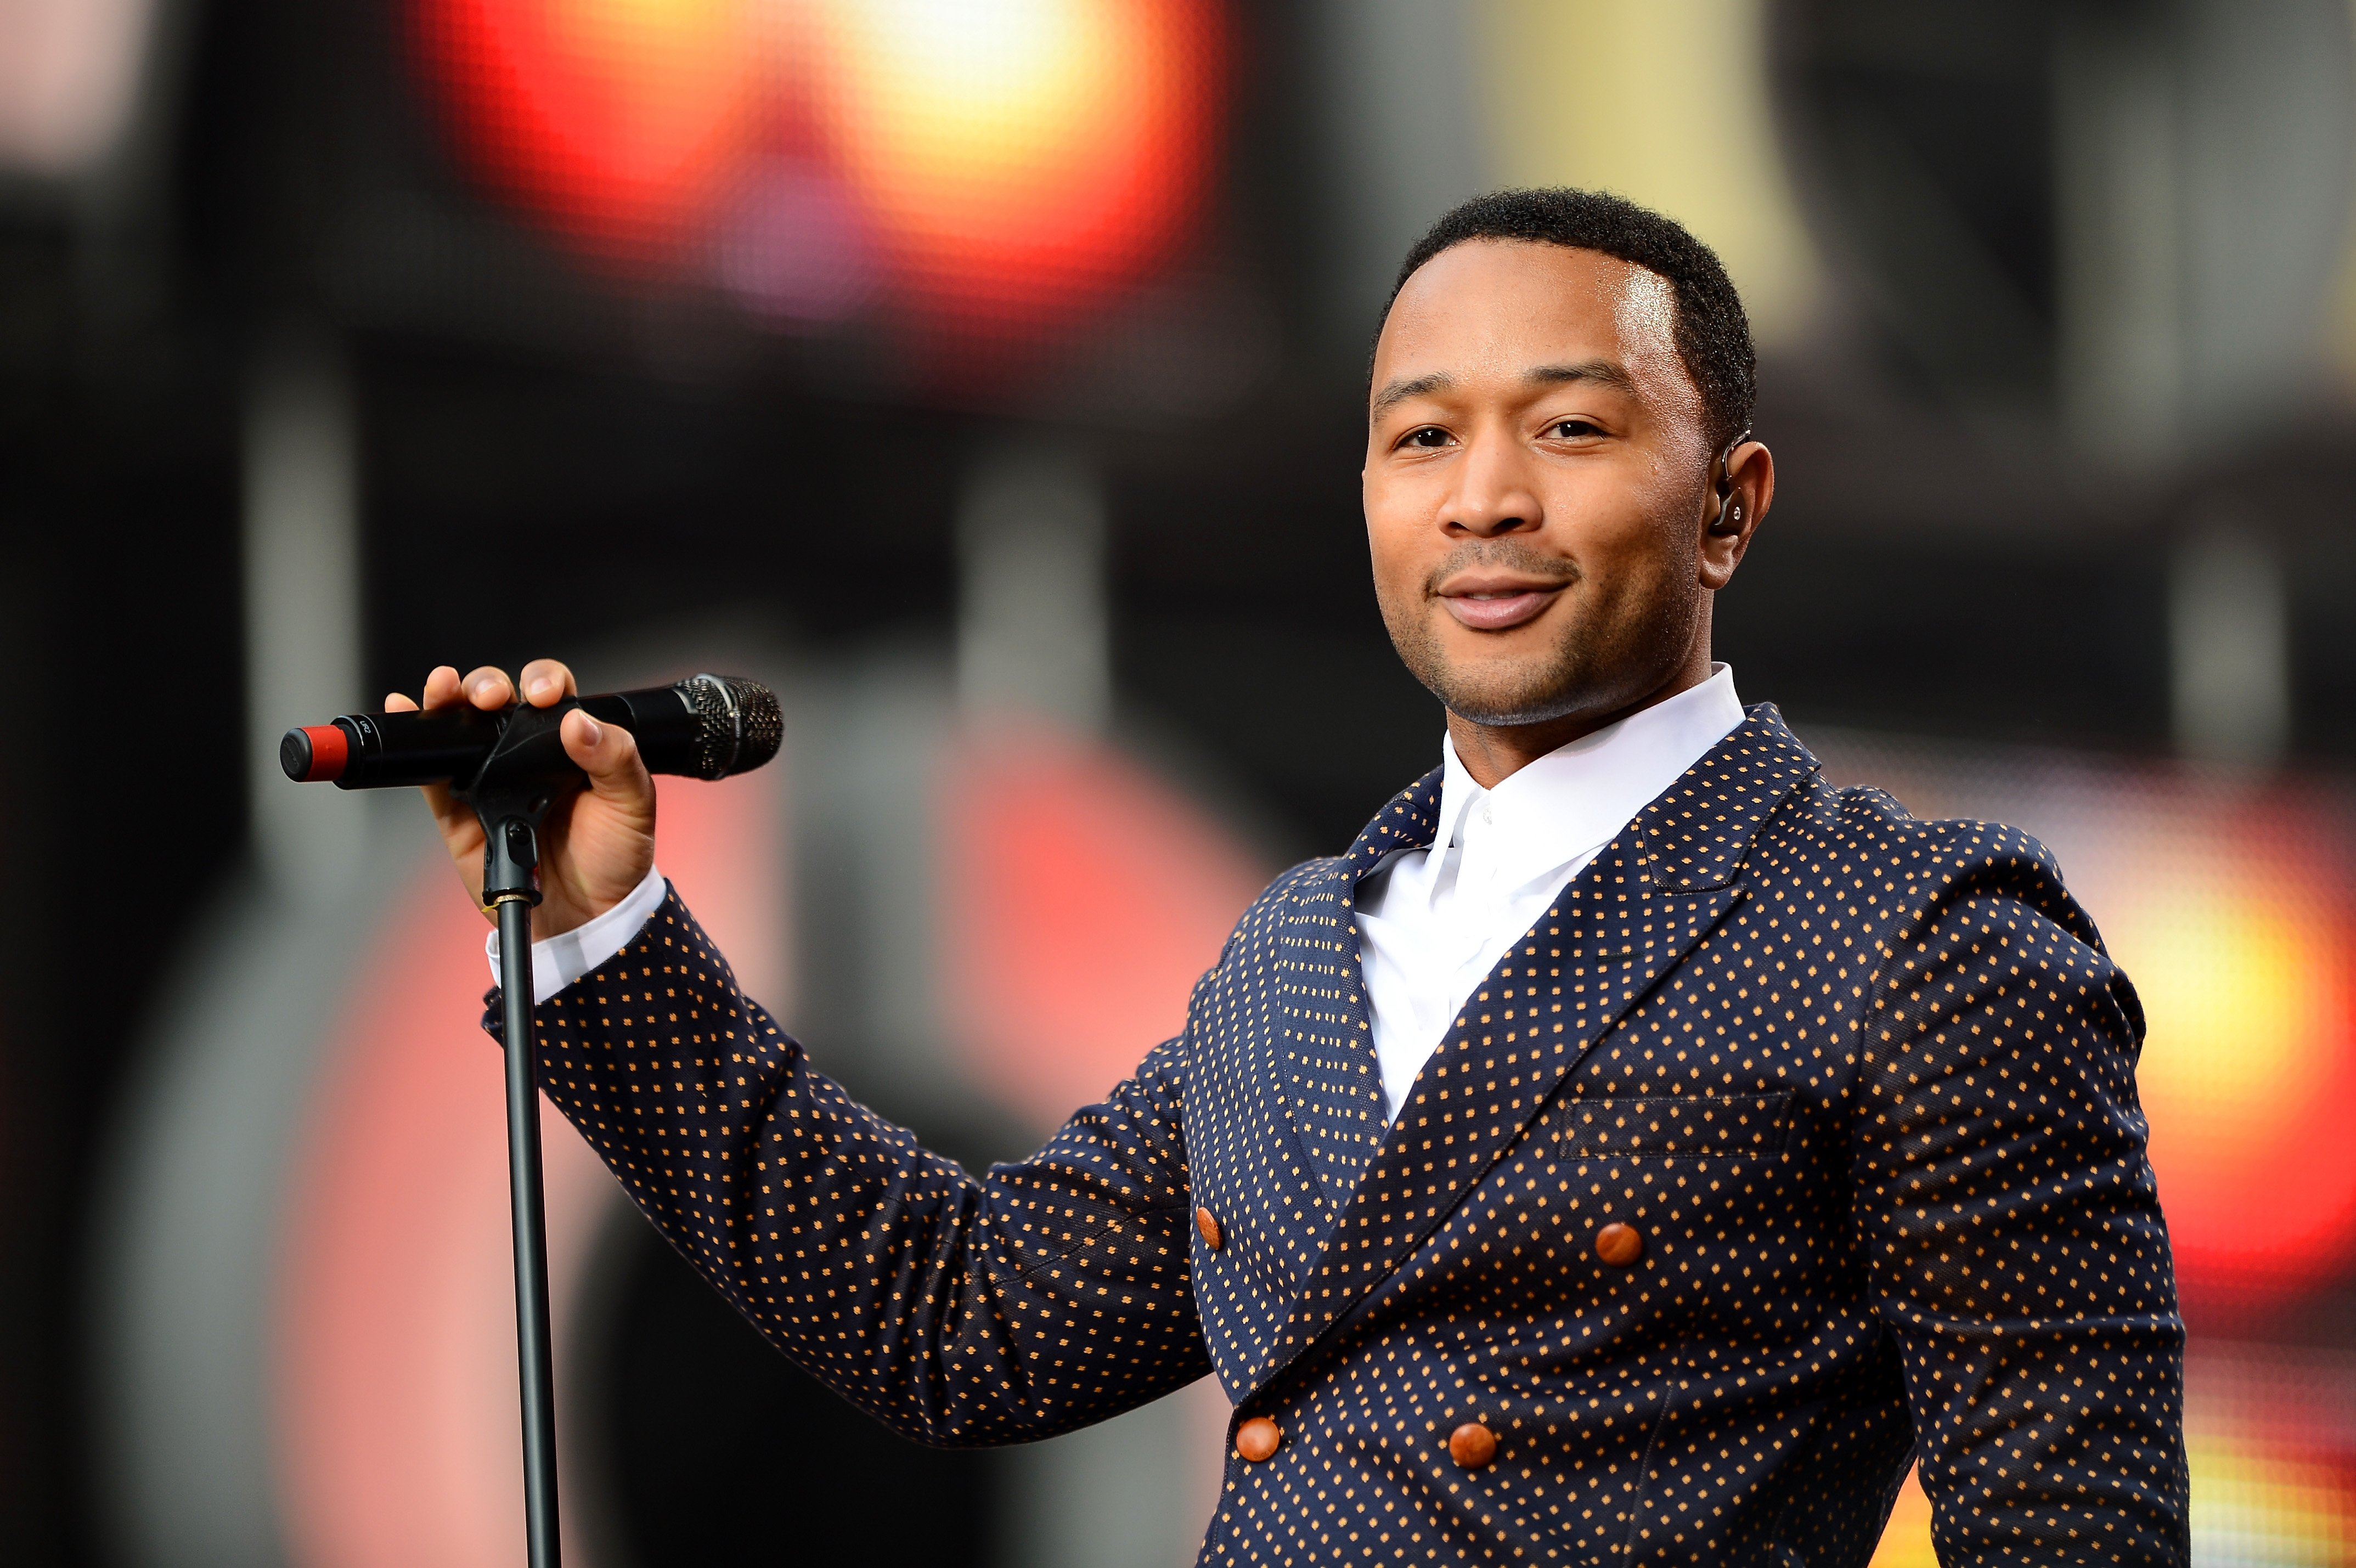 """John Legend performing at the """"Chime For Change: The Sound Of Change Live"""" Concert on June 1, 2013 in London, England.   Source: Getty Images"""